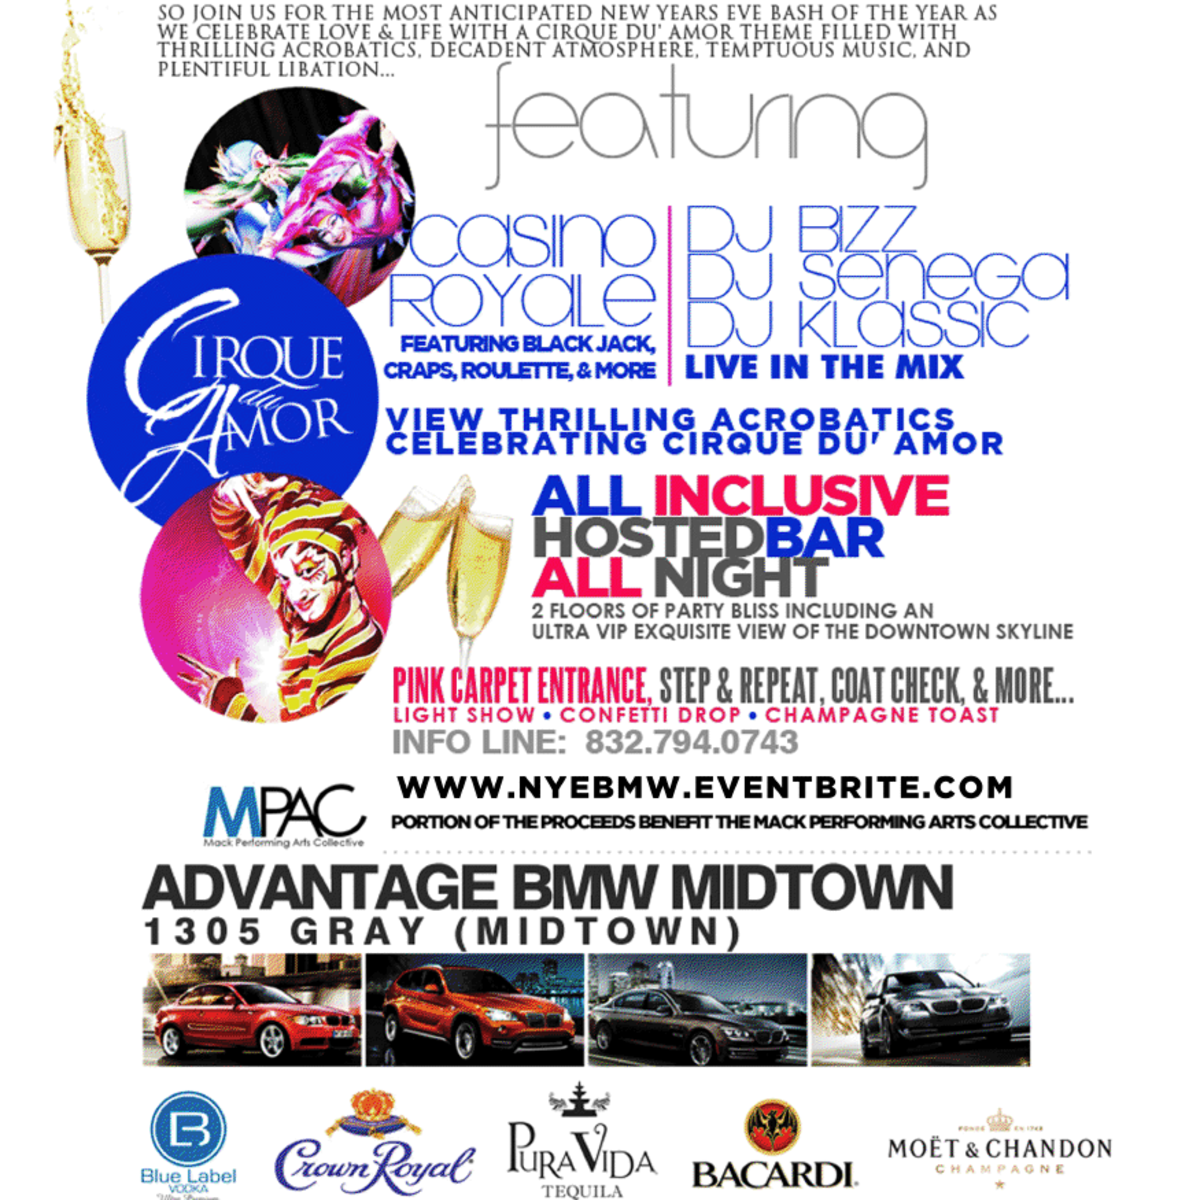 Fifth Annual Art of Celebration New Year's Eve Affair